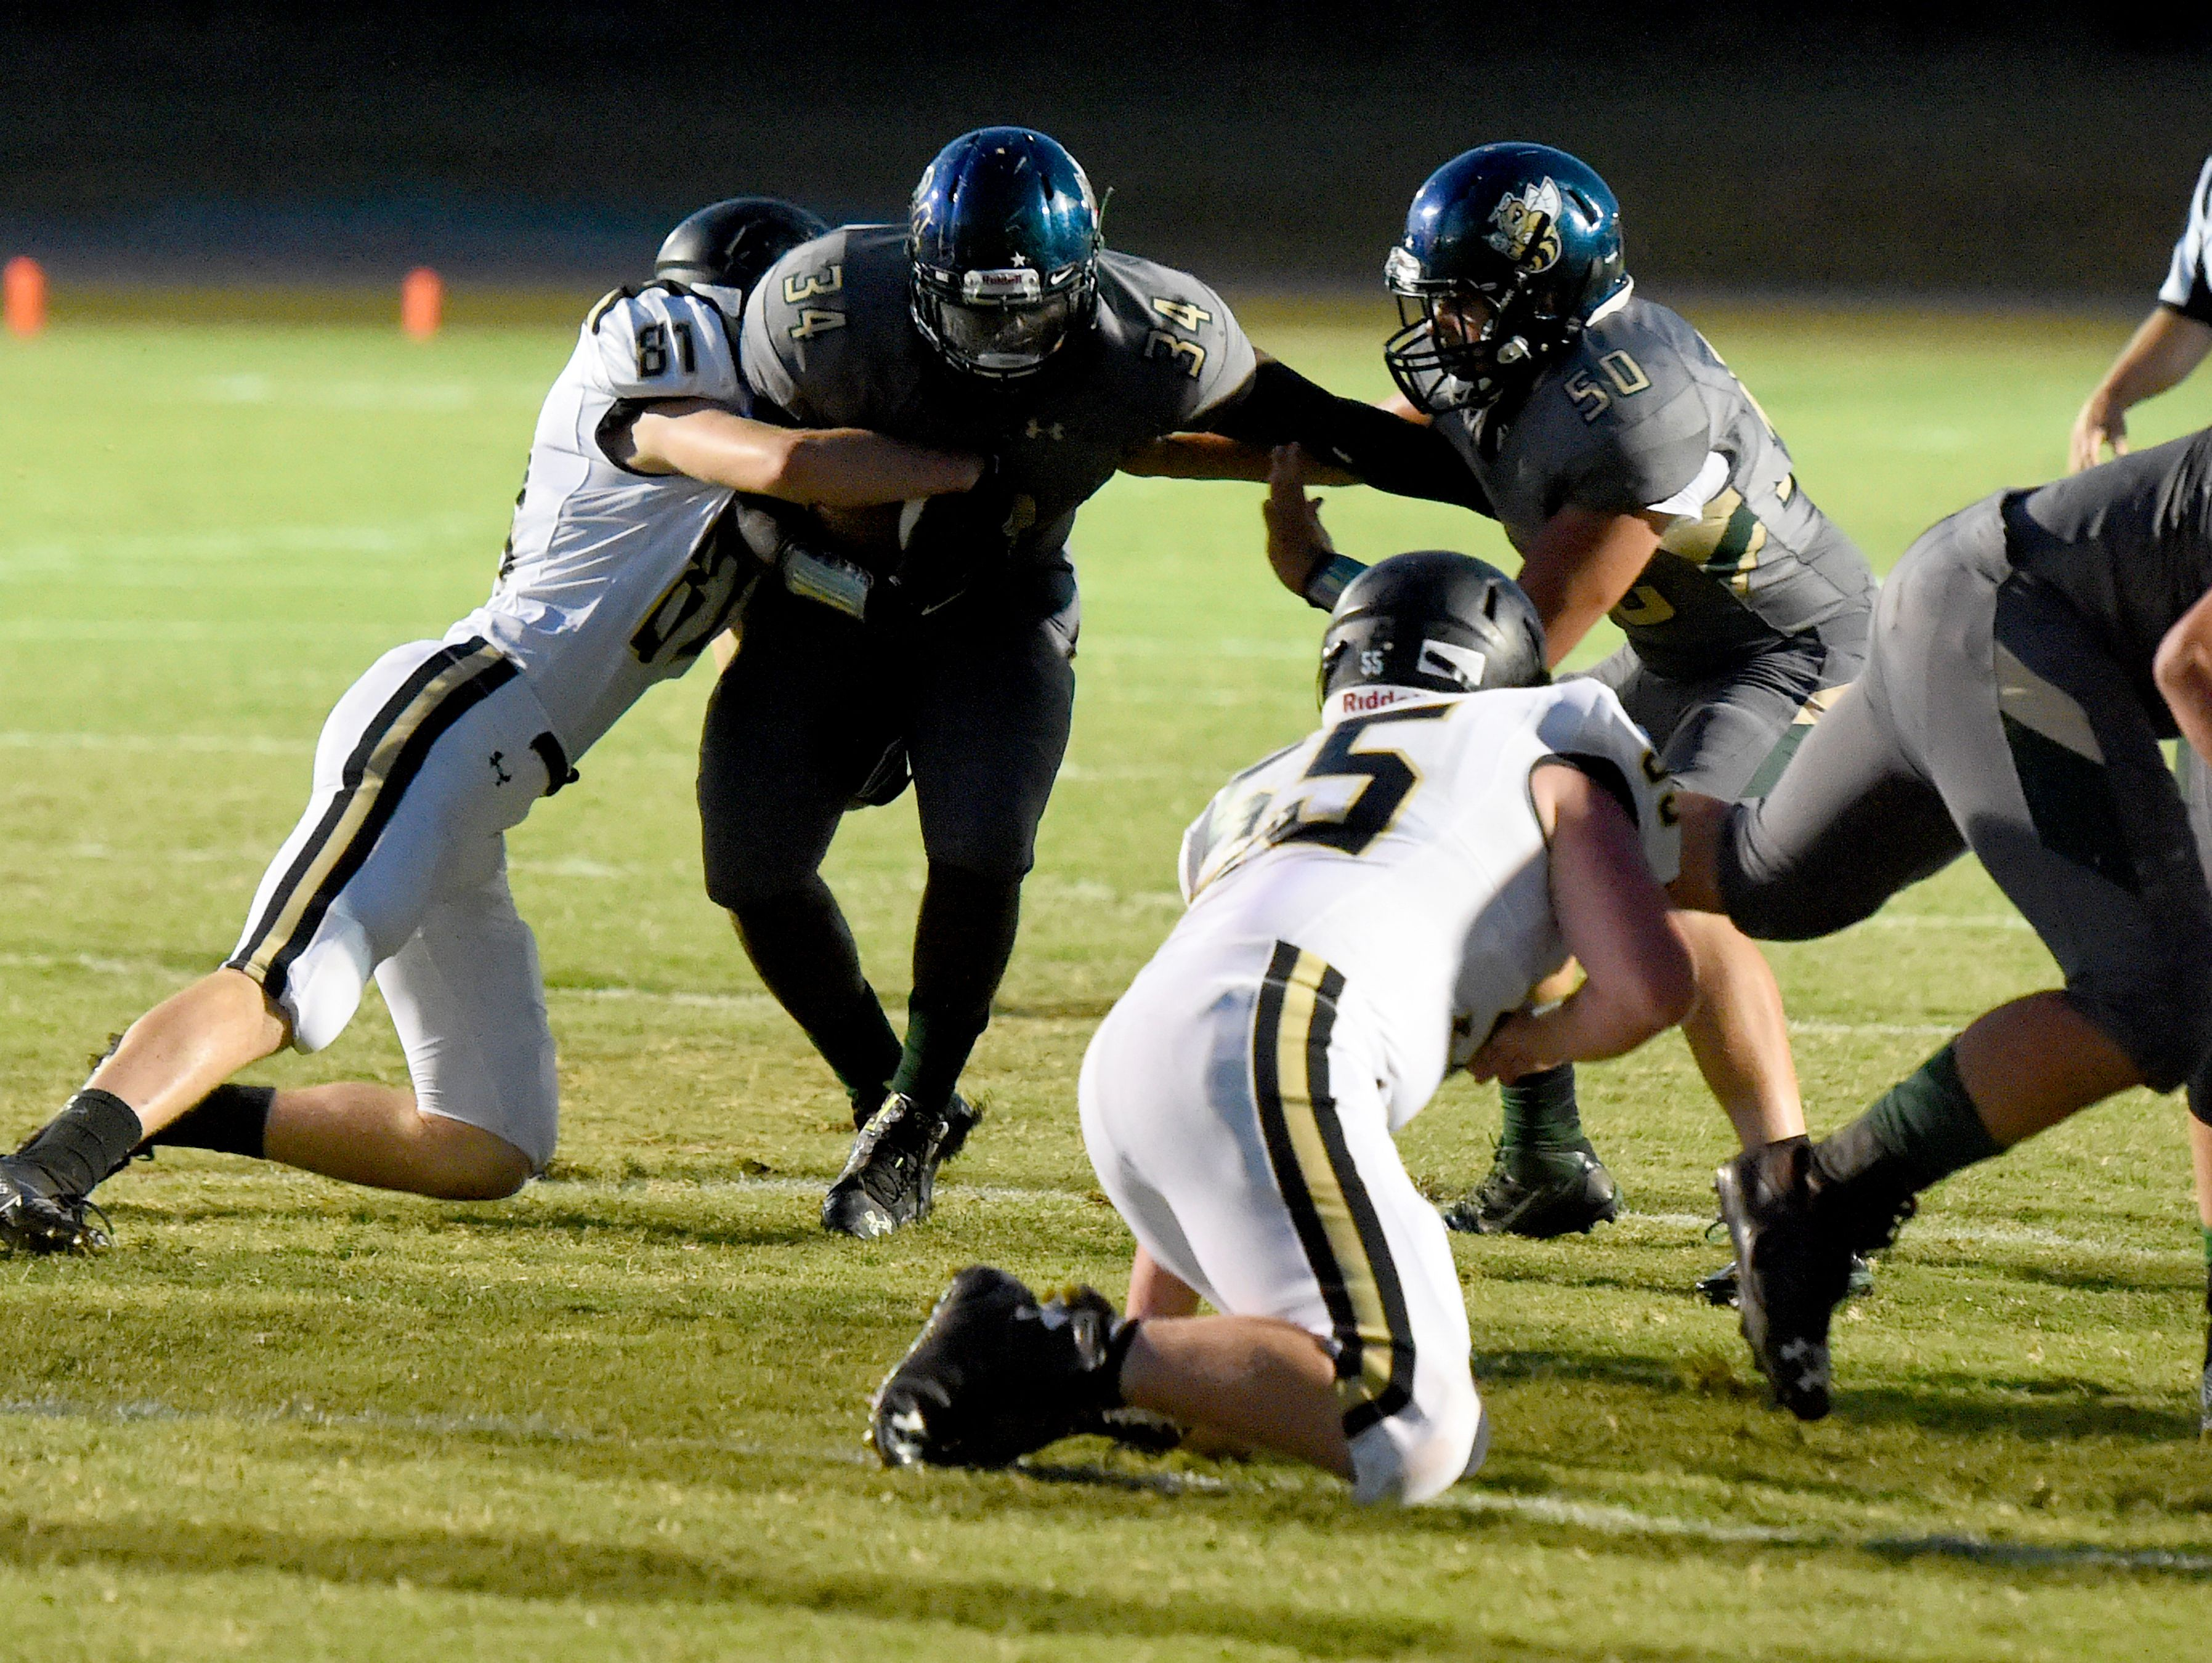 Wilson Memorial's Eddie Harris struggles to move the ball as Buffalo Gap's Carter Mohler goes for the tackle during a football game played in Fishersville on Friday, Sept. 23, 2016.